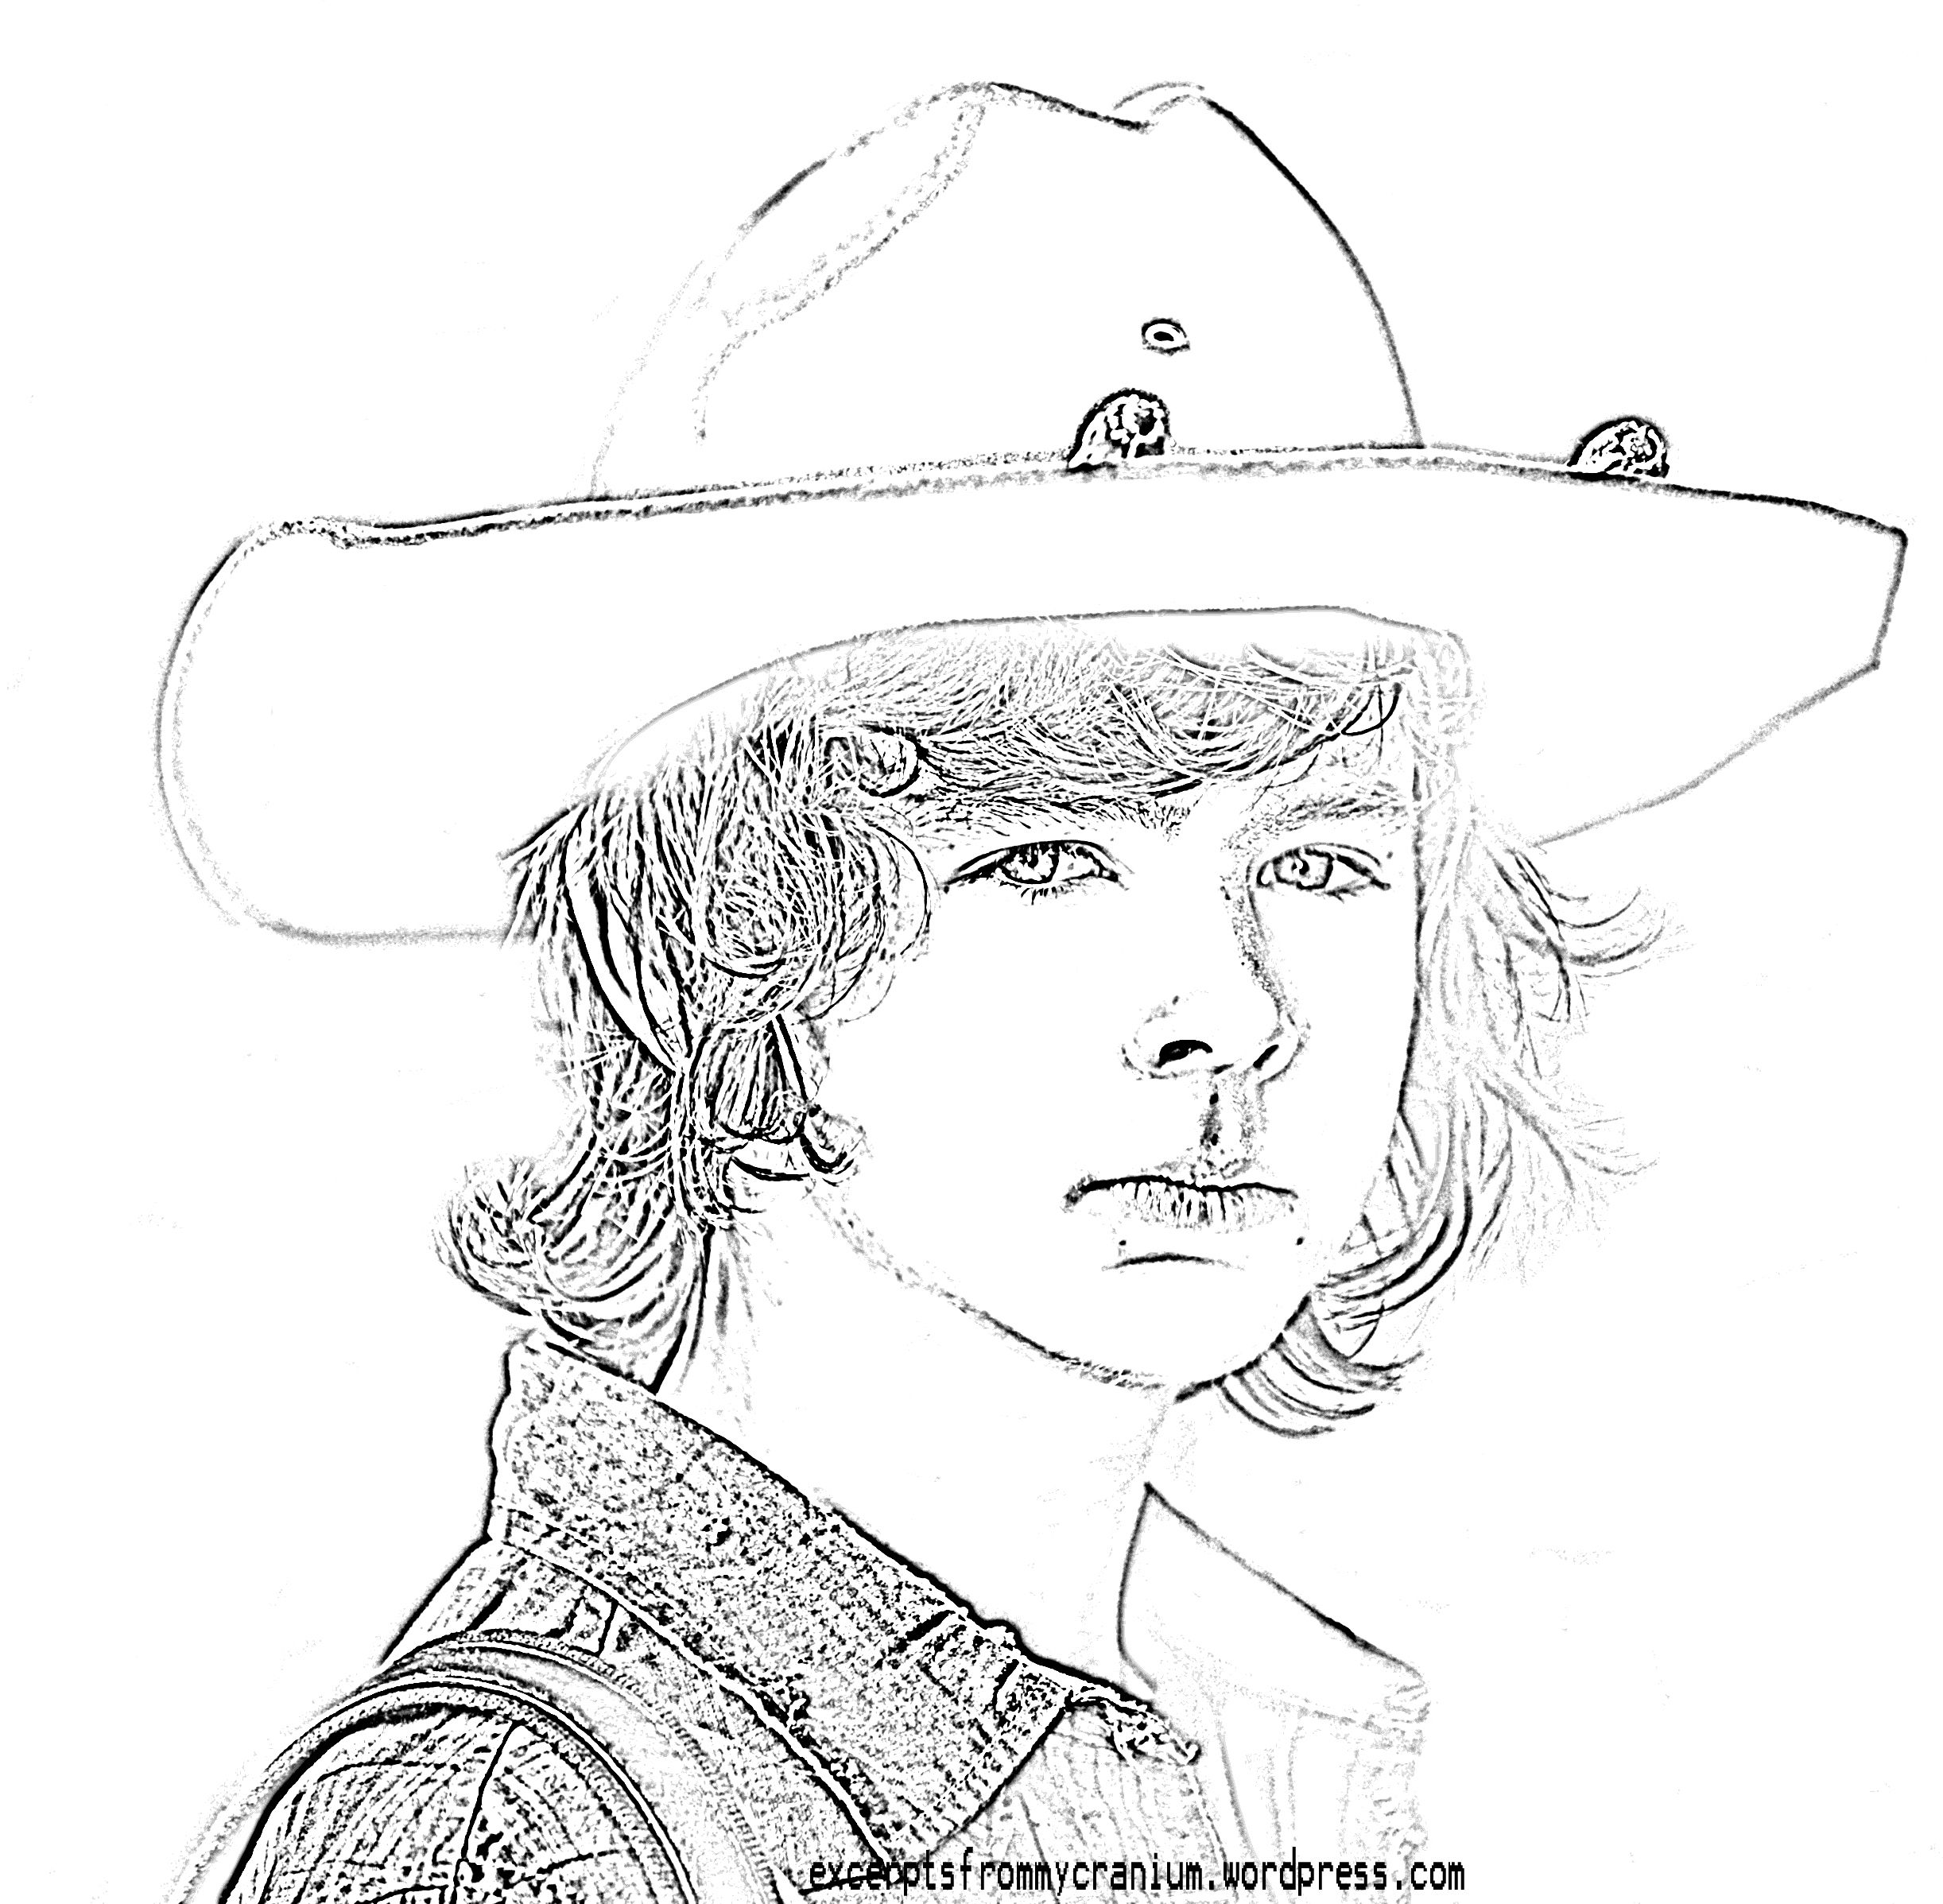 walking carl coloring the logo mermaid book cat birthday theme rainbow crayon split coloring pages Walking Dead Coloring Page